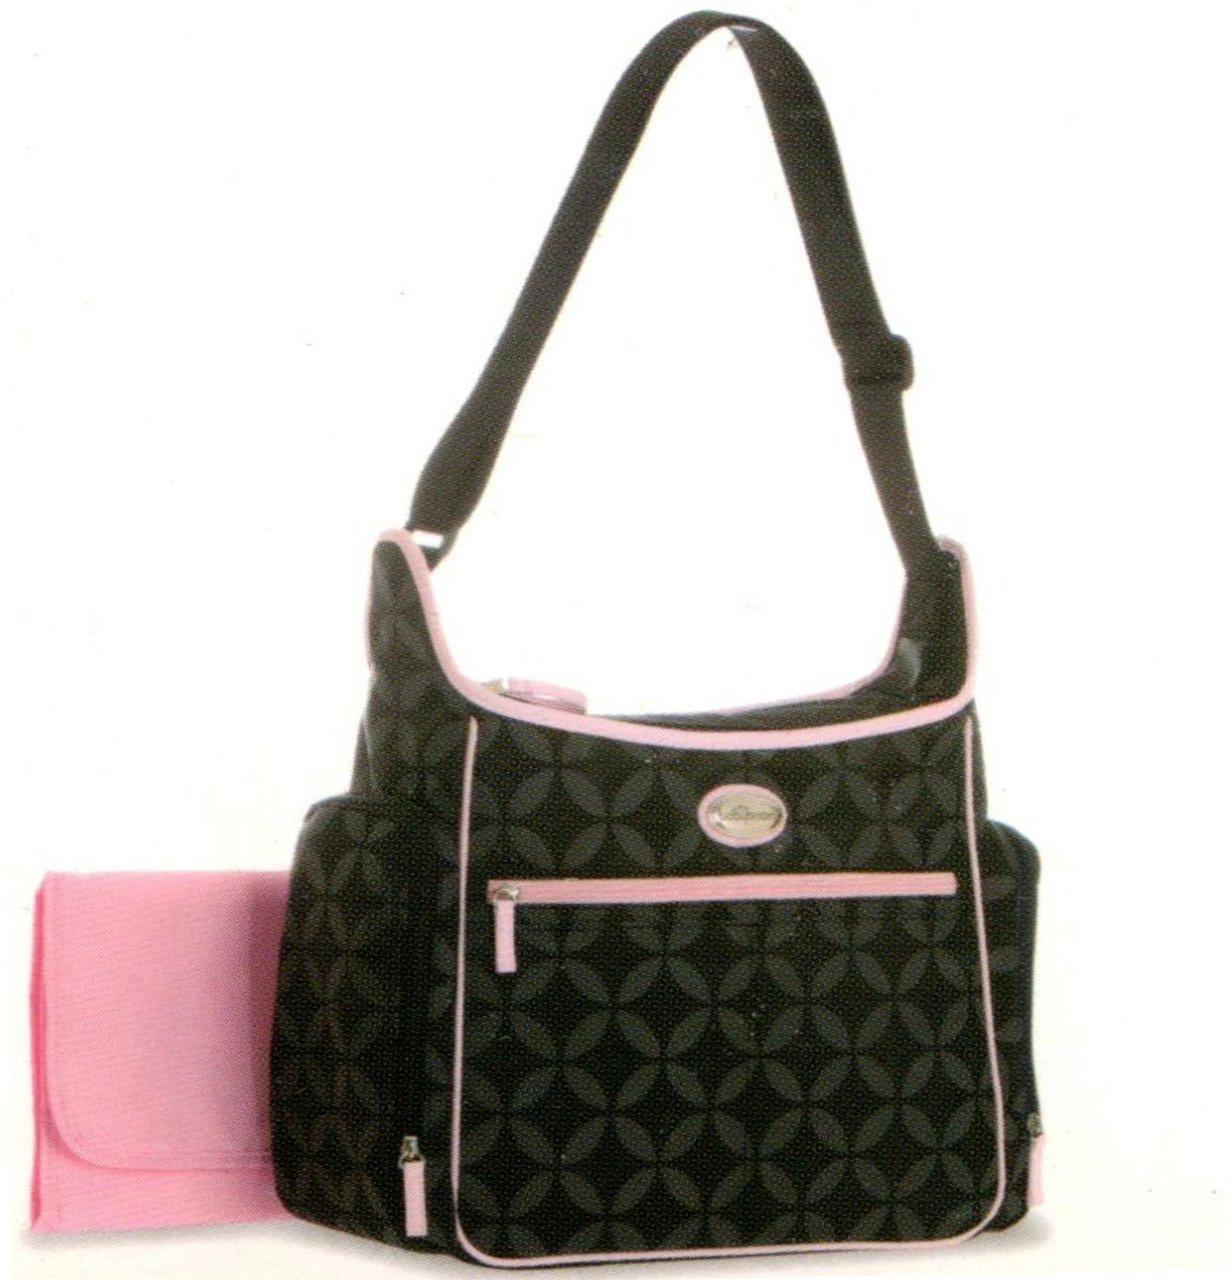 Baby Boom Easy Reach Diaper Bag Black w Pink Trim by Baby Boom